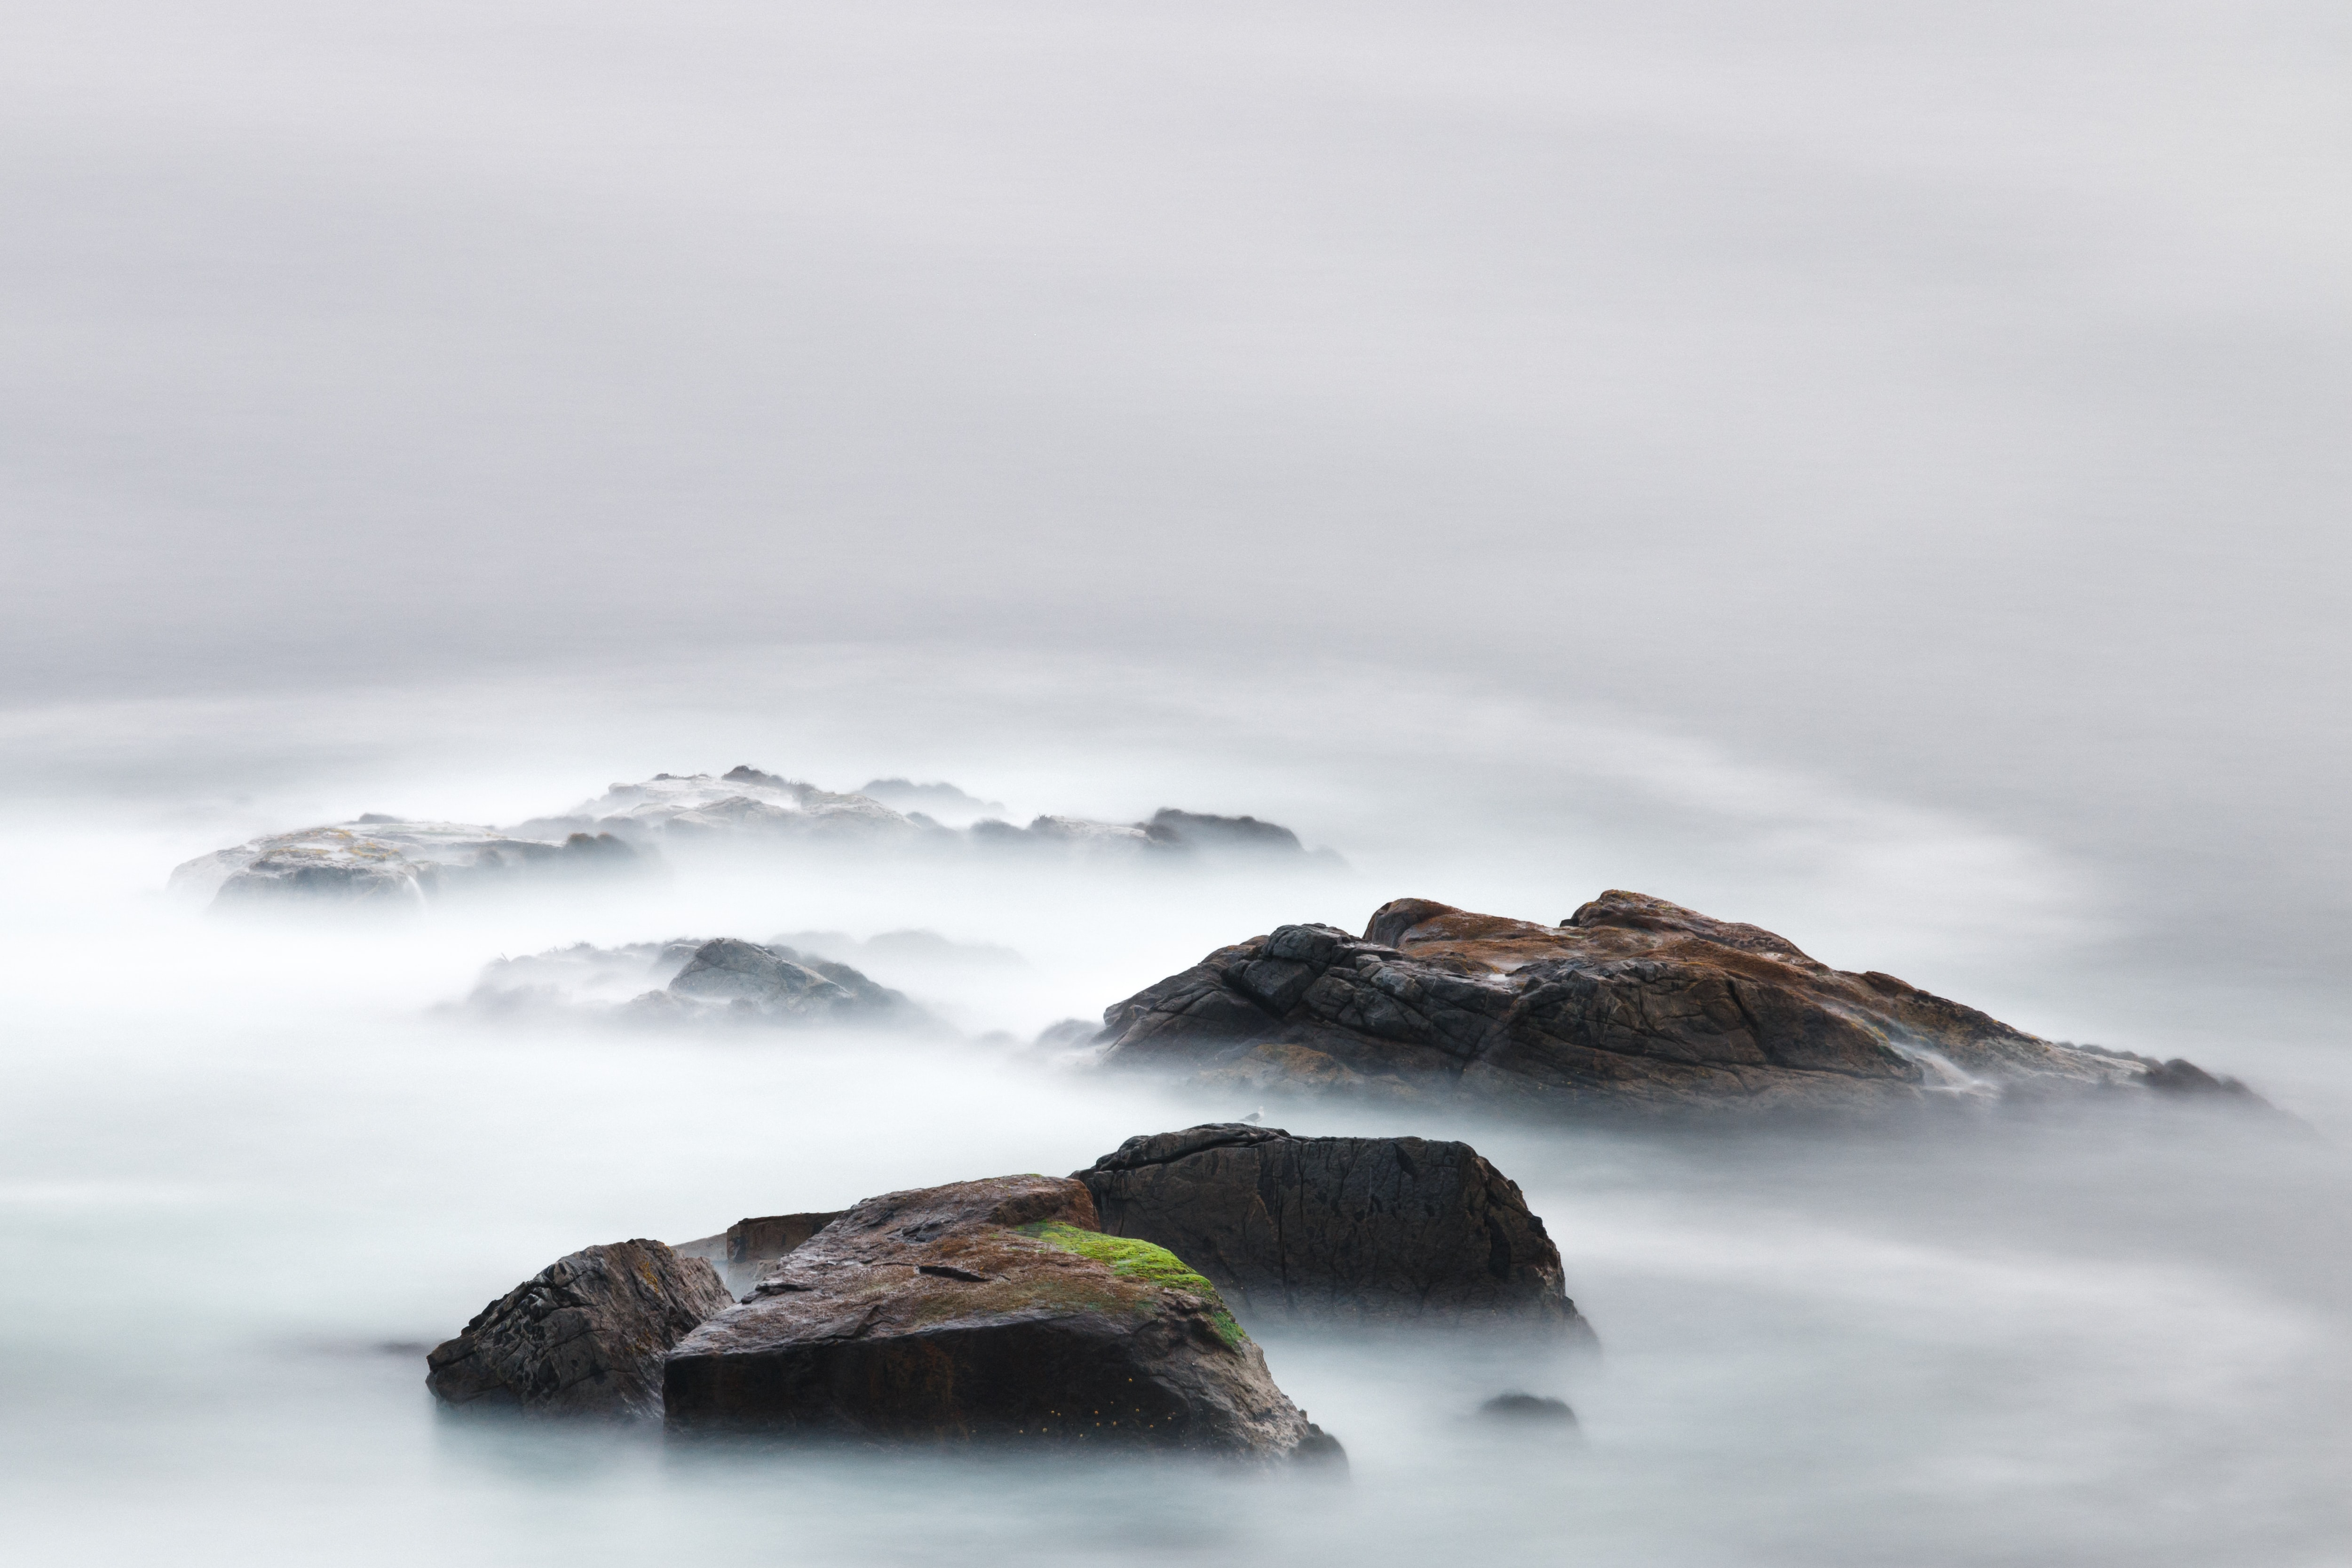 Wet rocks covered in mist on a gray and overcast day